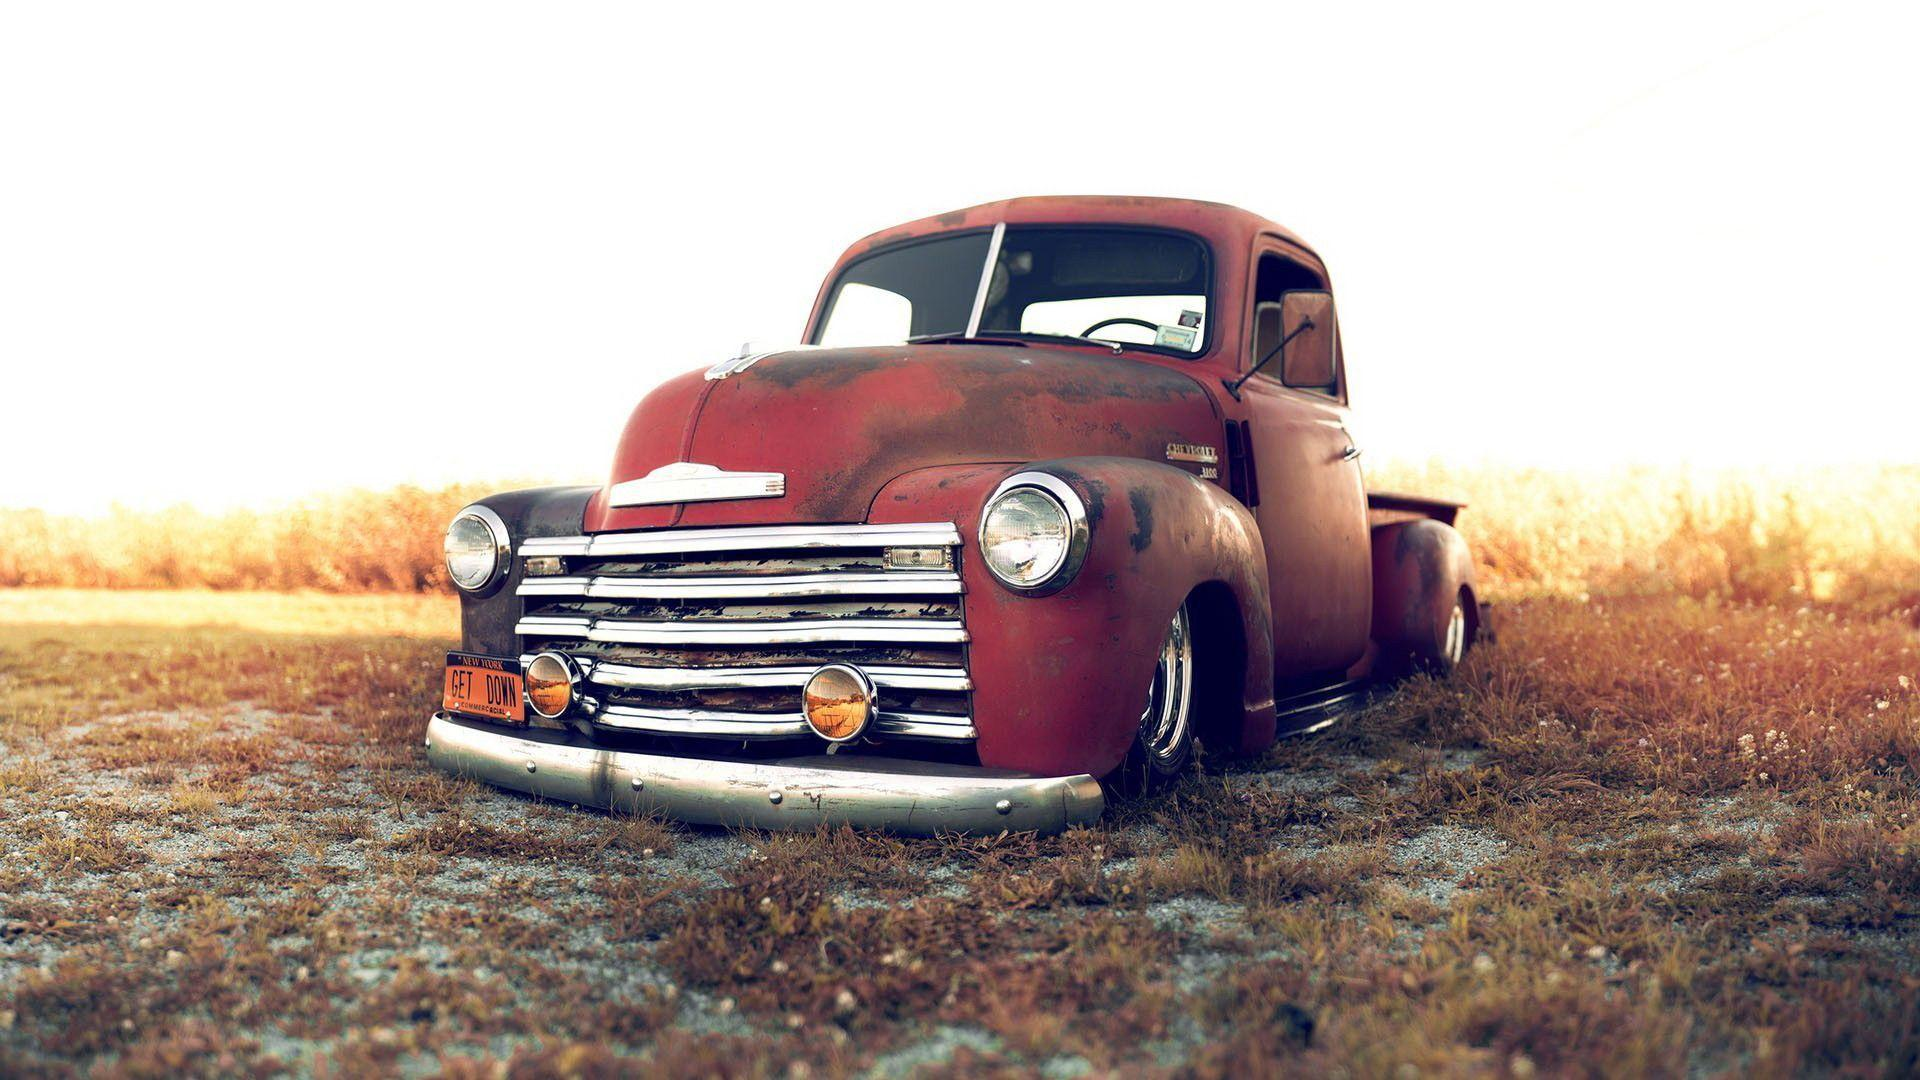 Interesting Wpid Chevy Truck Wallpapers X 1920x1080PX ~ Chevy